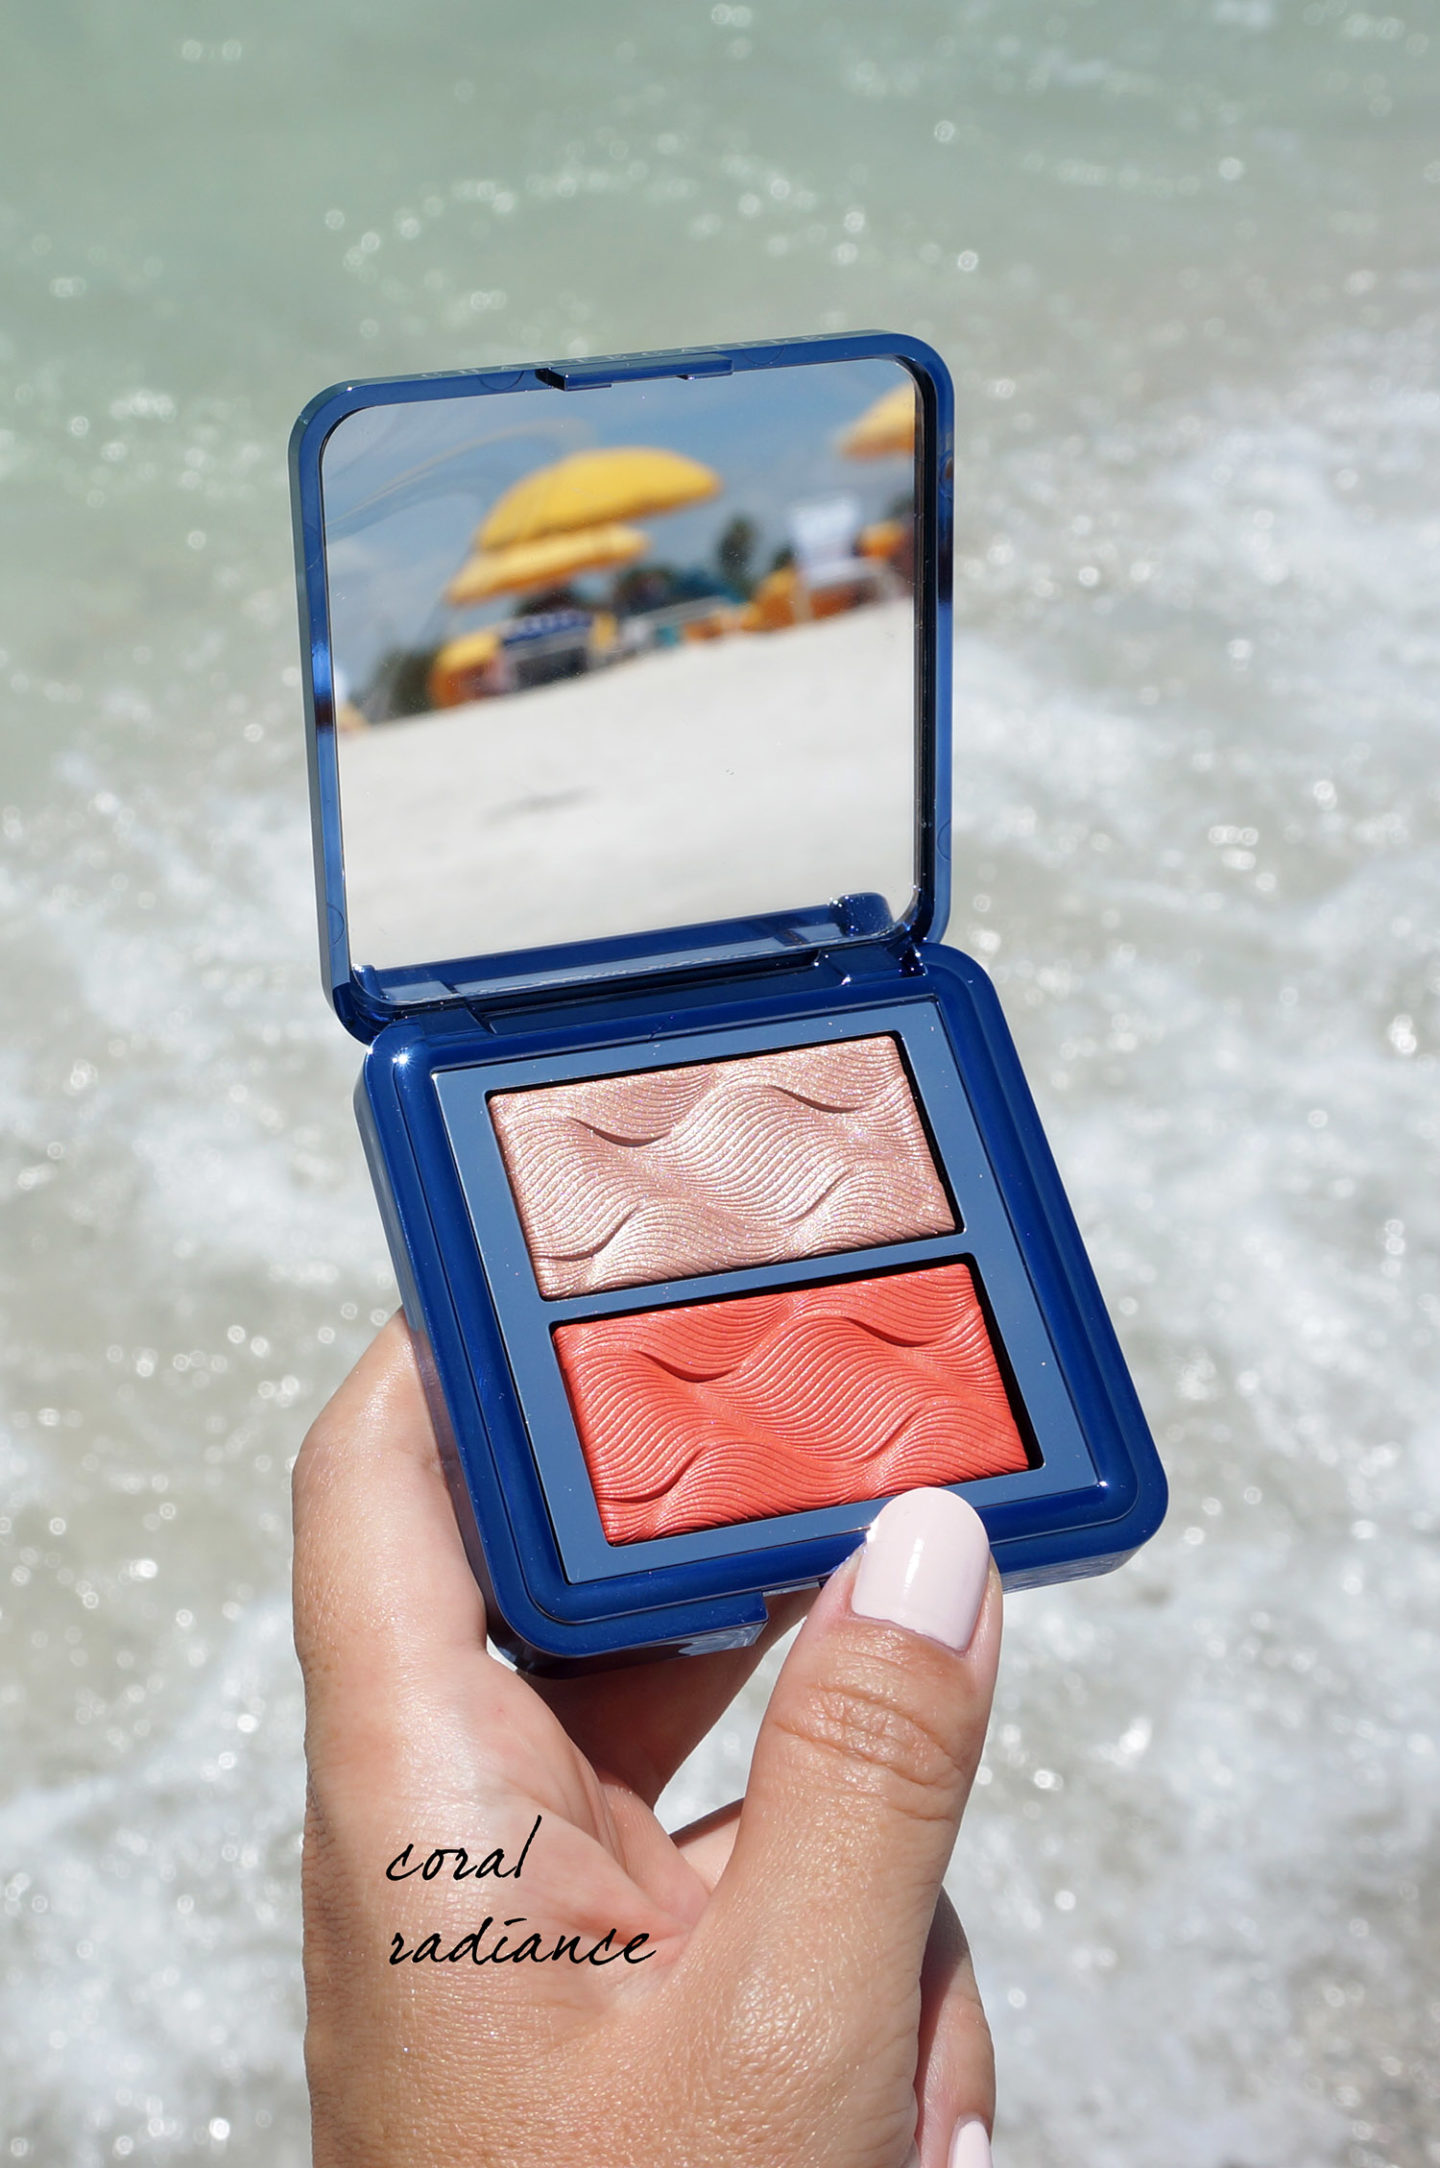 Radiance Chic Cheek and Highlighter Duo Coral Radiance